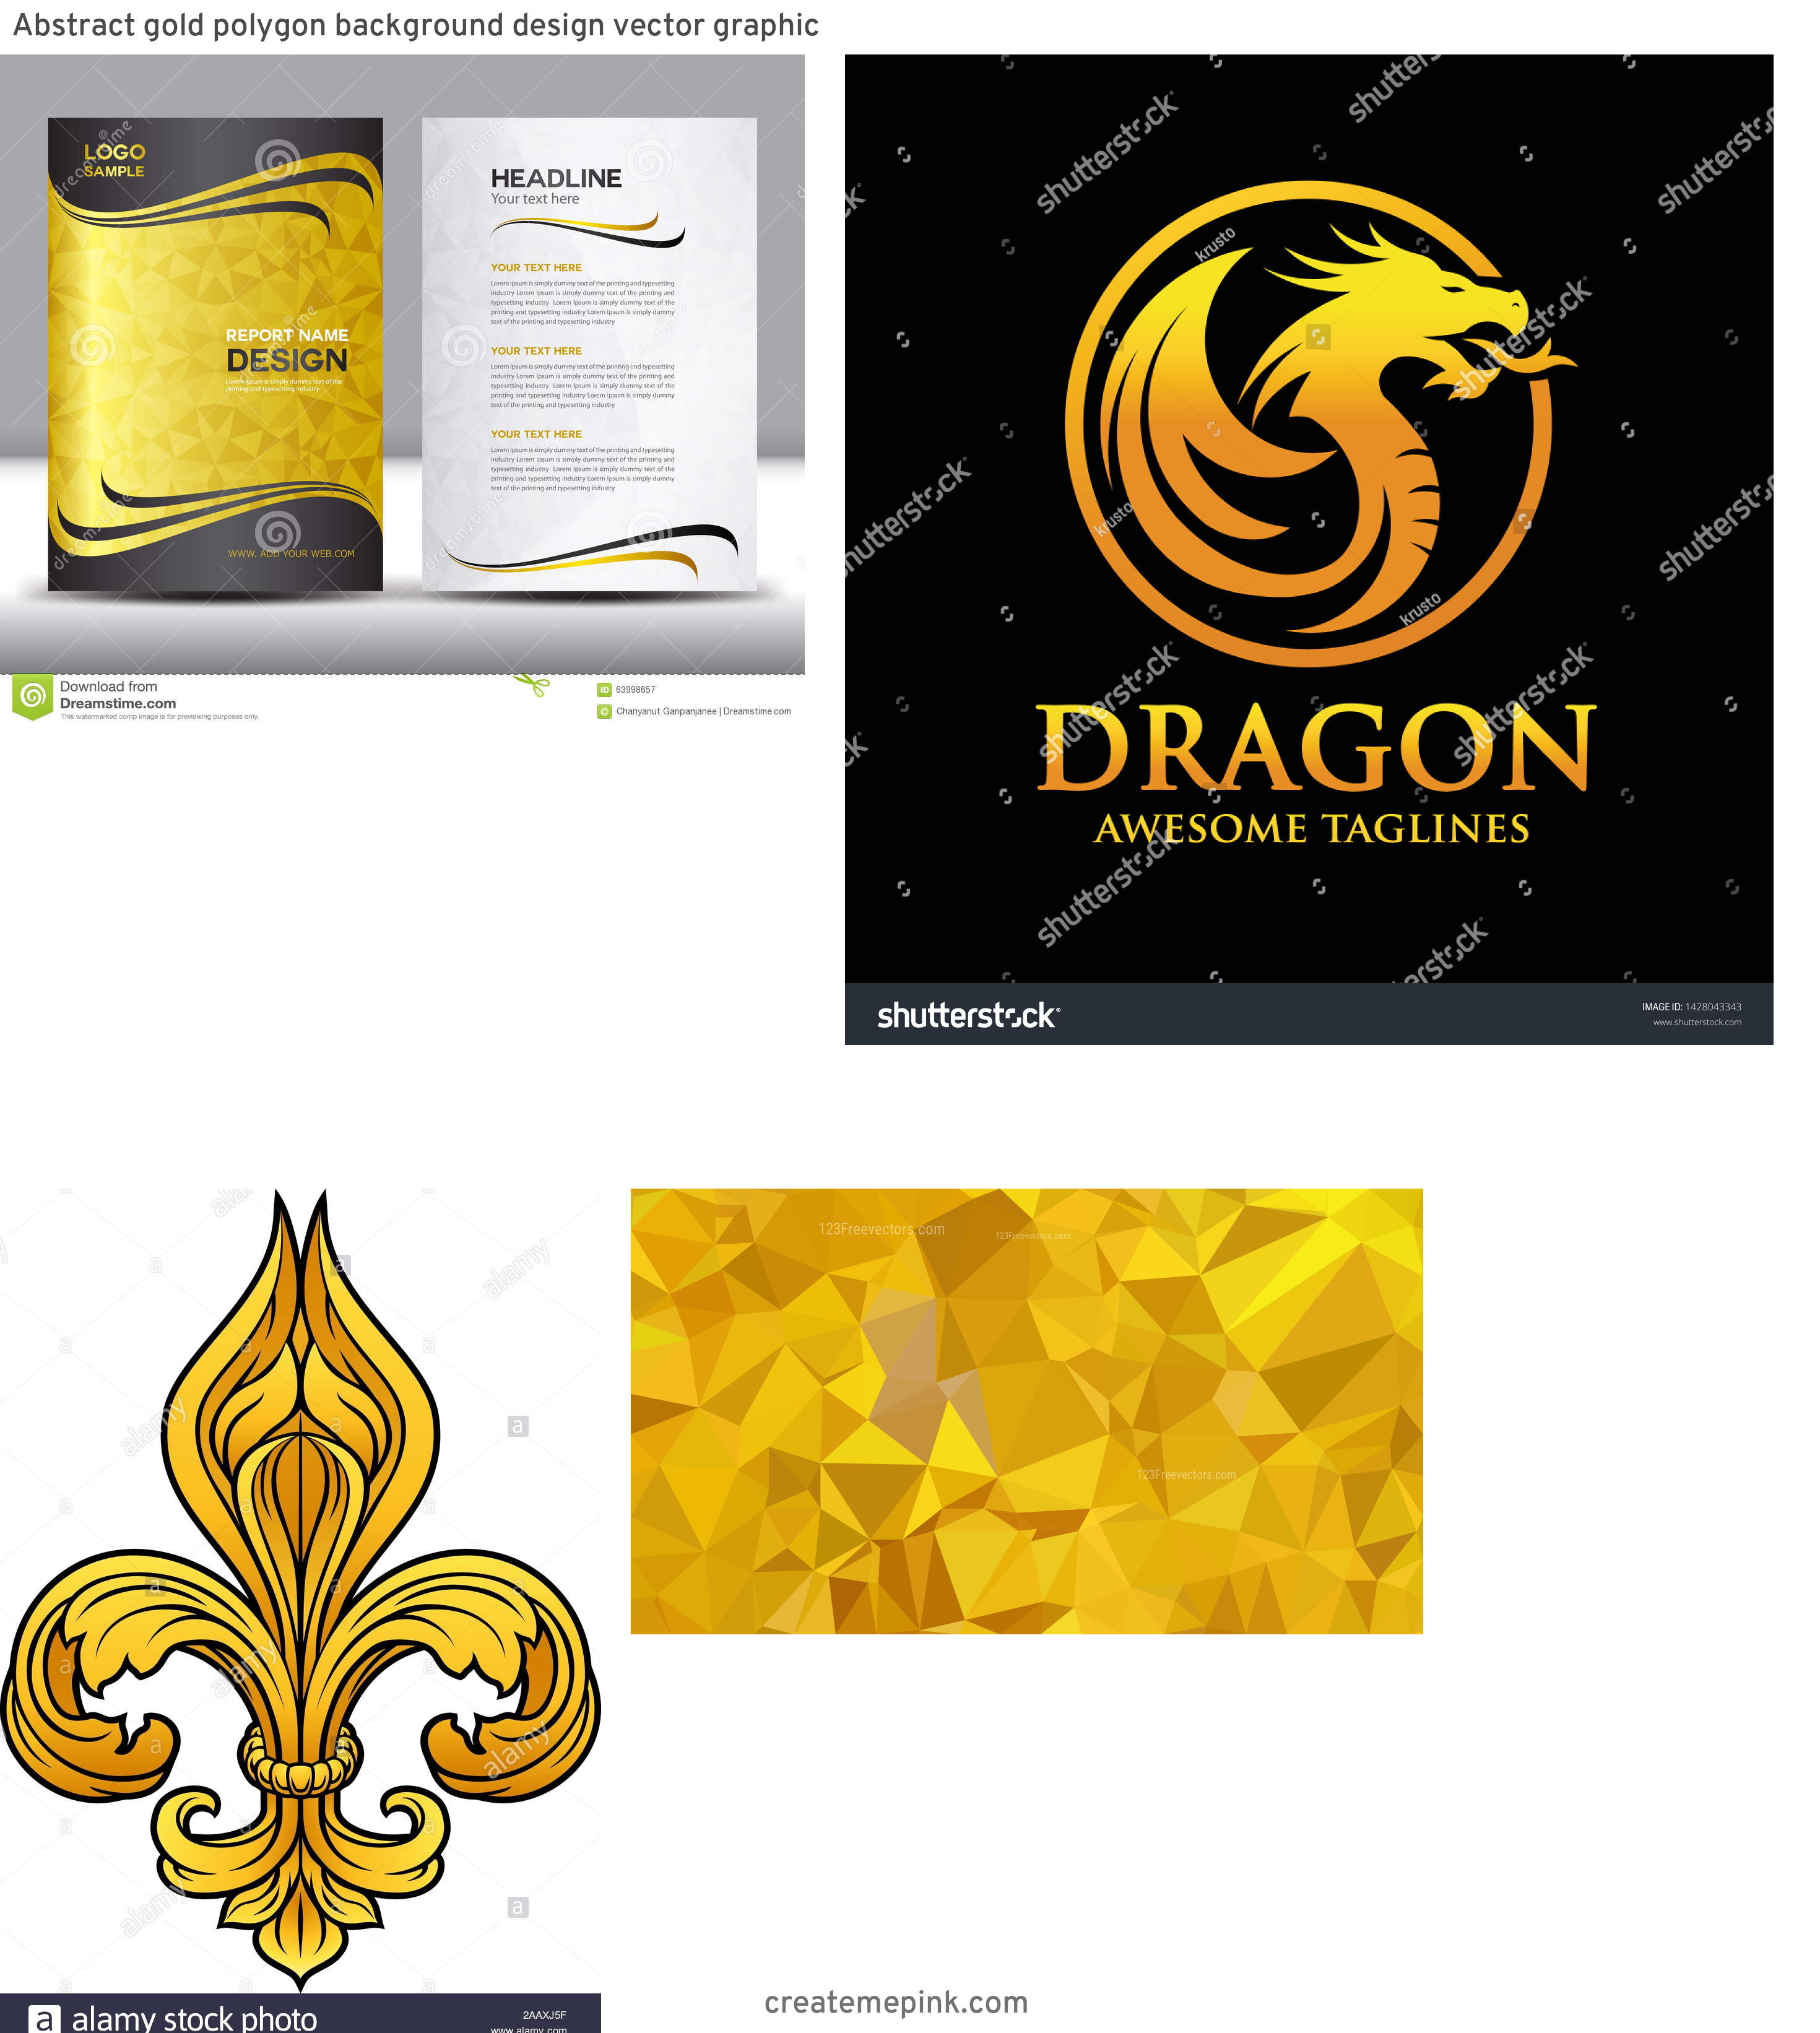 Gold Graphic Design Vectors: Abstract Gold Polygon Background Design Vector Graphic